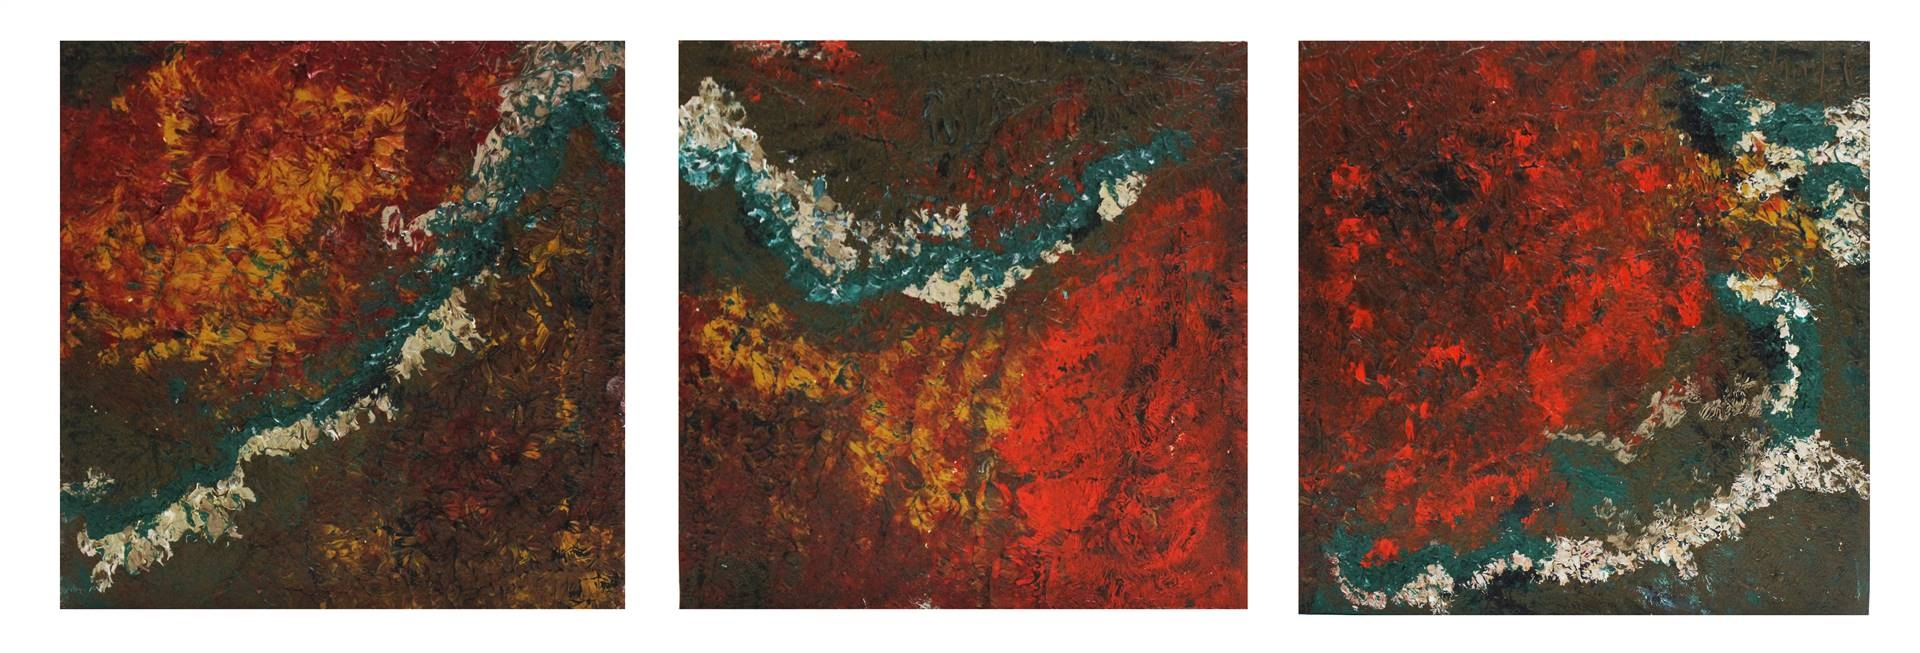 Autumn Equinox: Collective Visions in Abstraction and Figuration image